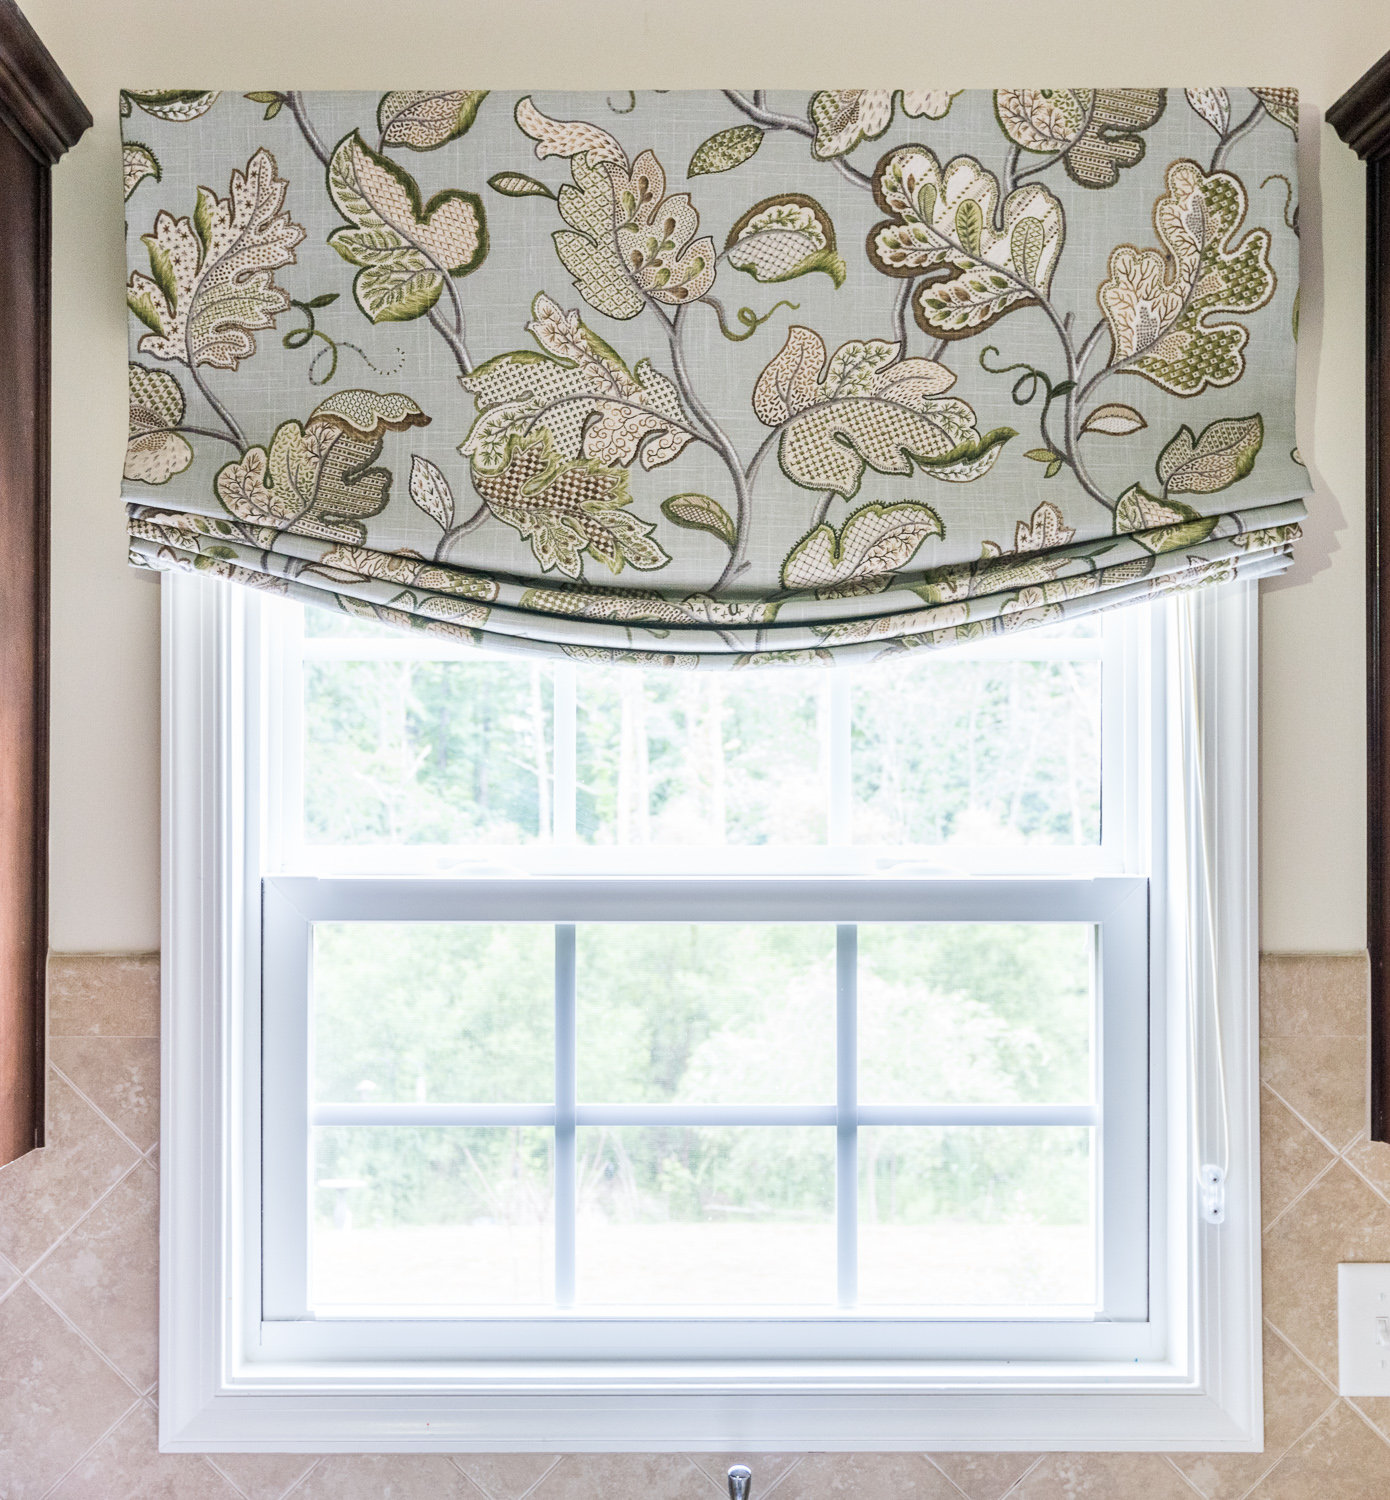 Relaxed Roman Shade for Leah Walder Interiors